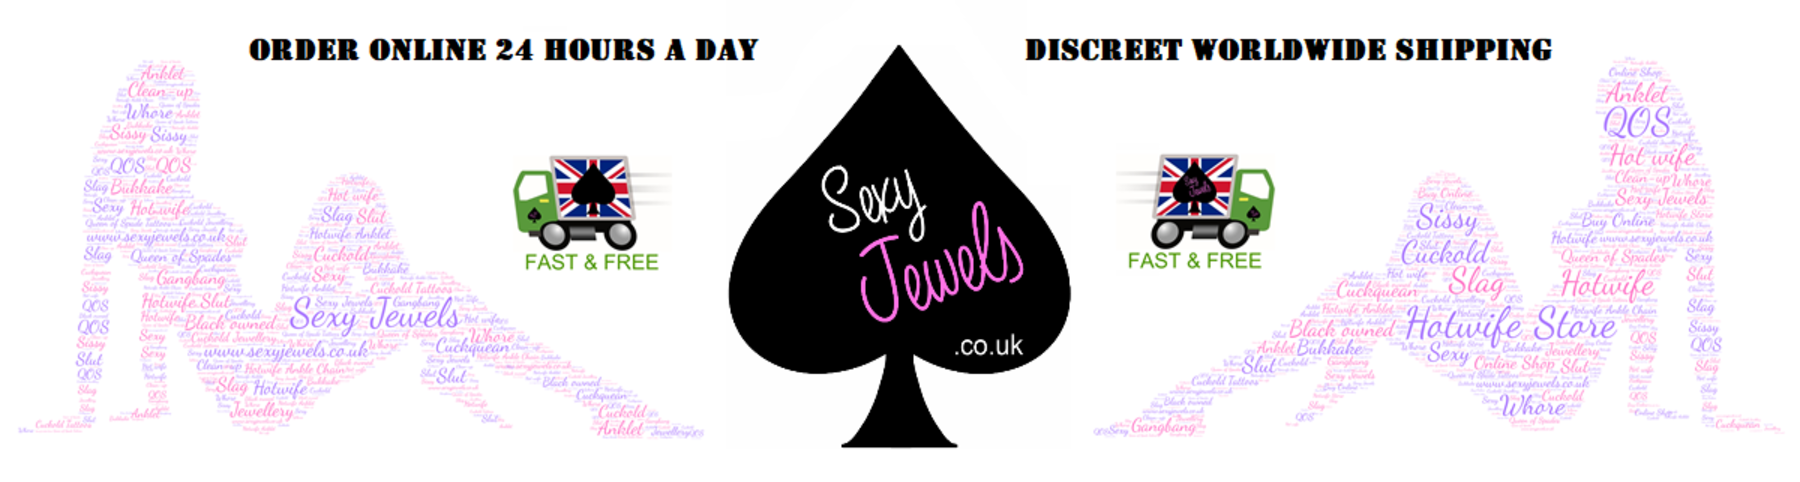 Hotwife Jewellery, Cuckold Temporary Tattoos, Queen Of Spade Anklet, Online Hotwife Store - www.sexyjewels.co.uk